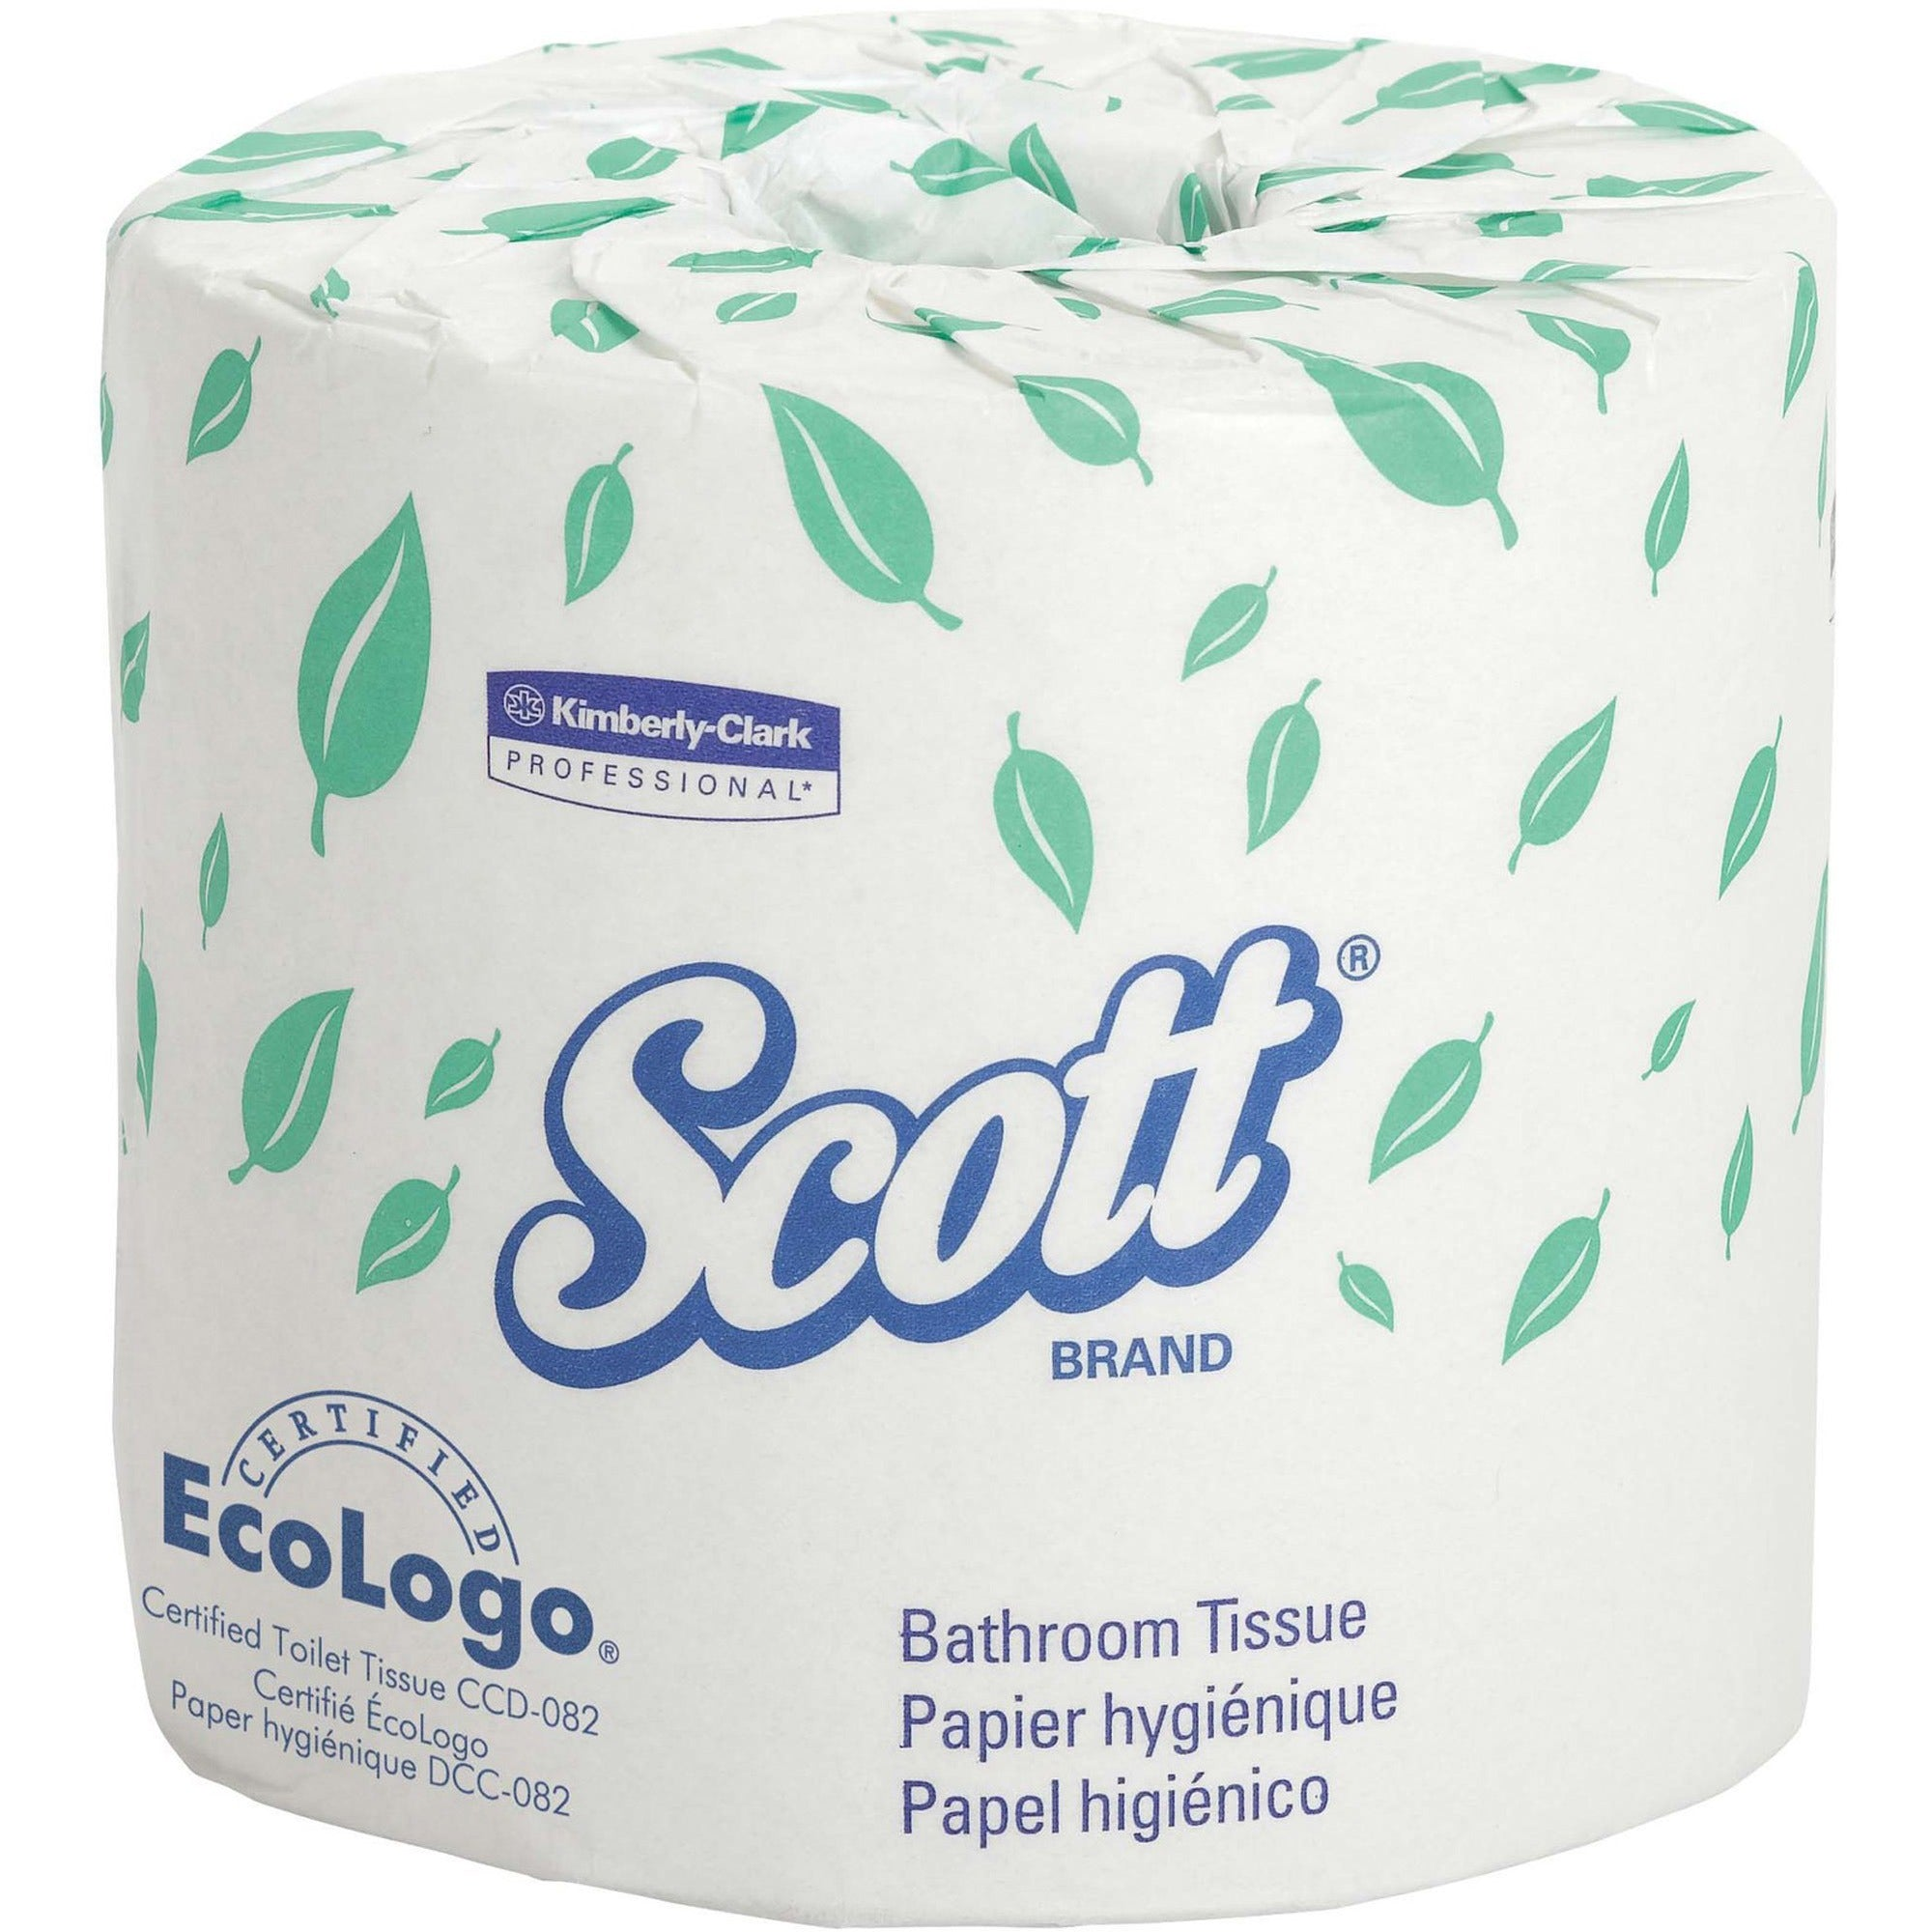 Scott Standard 2-Ply Toilet Paper Rolls, 80 Rolls - Cleaning Ideas